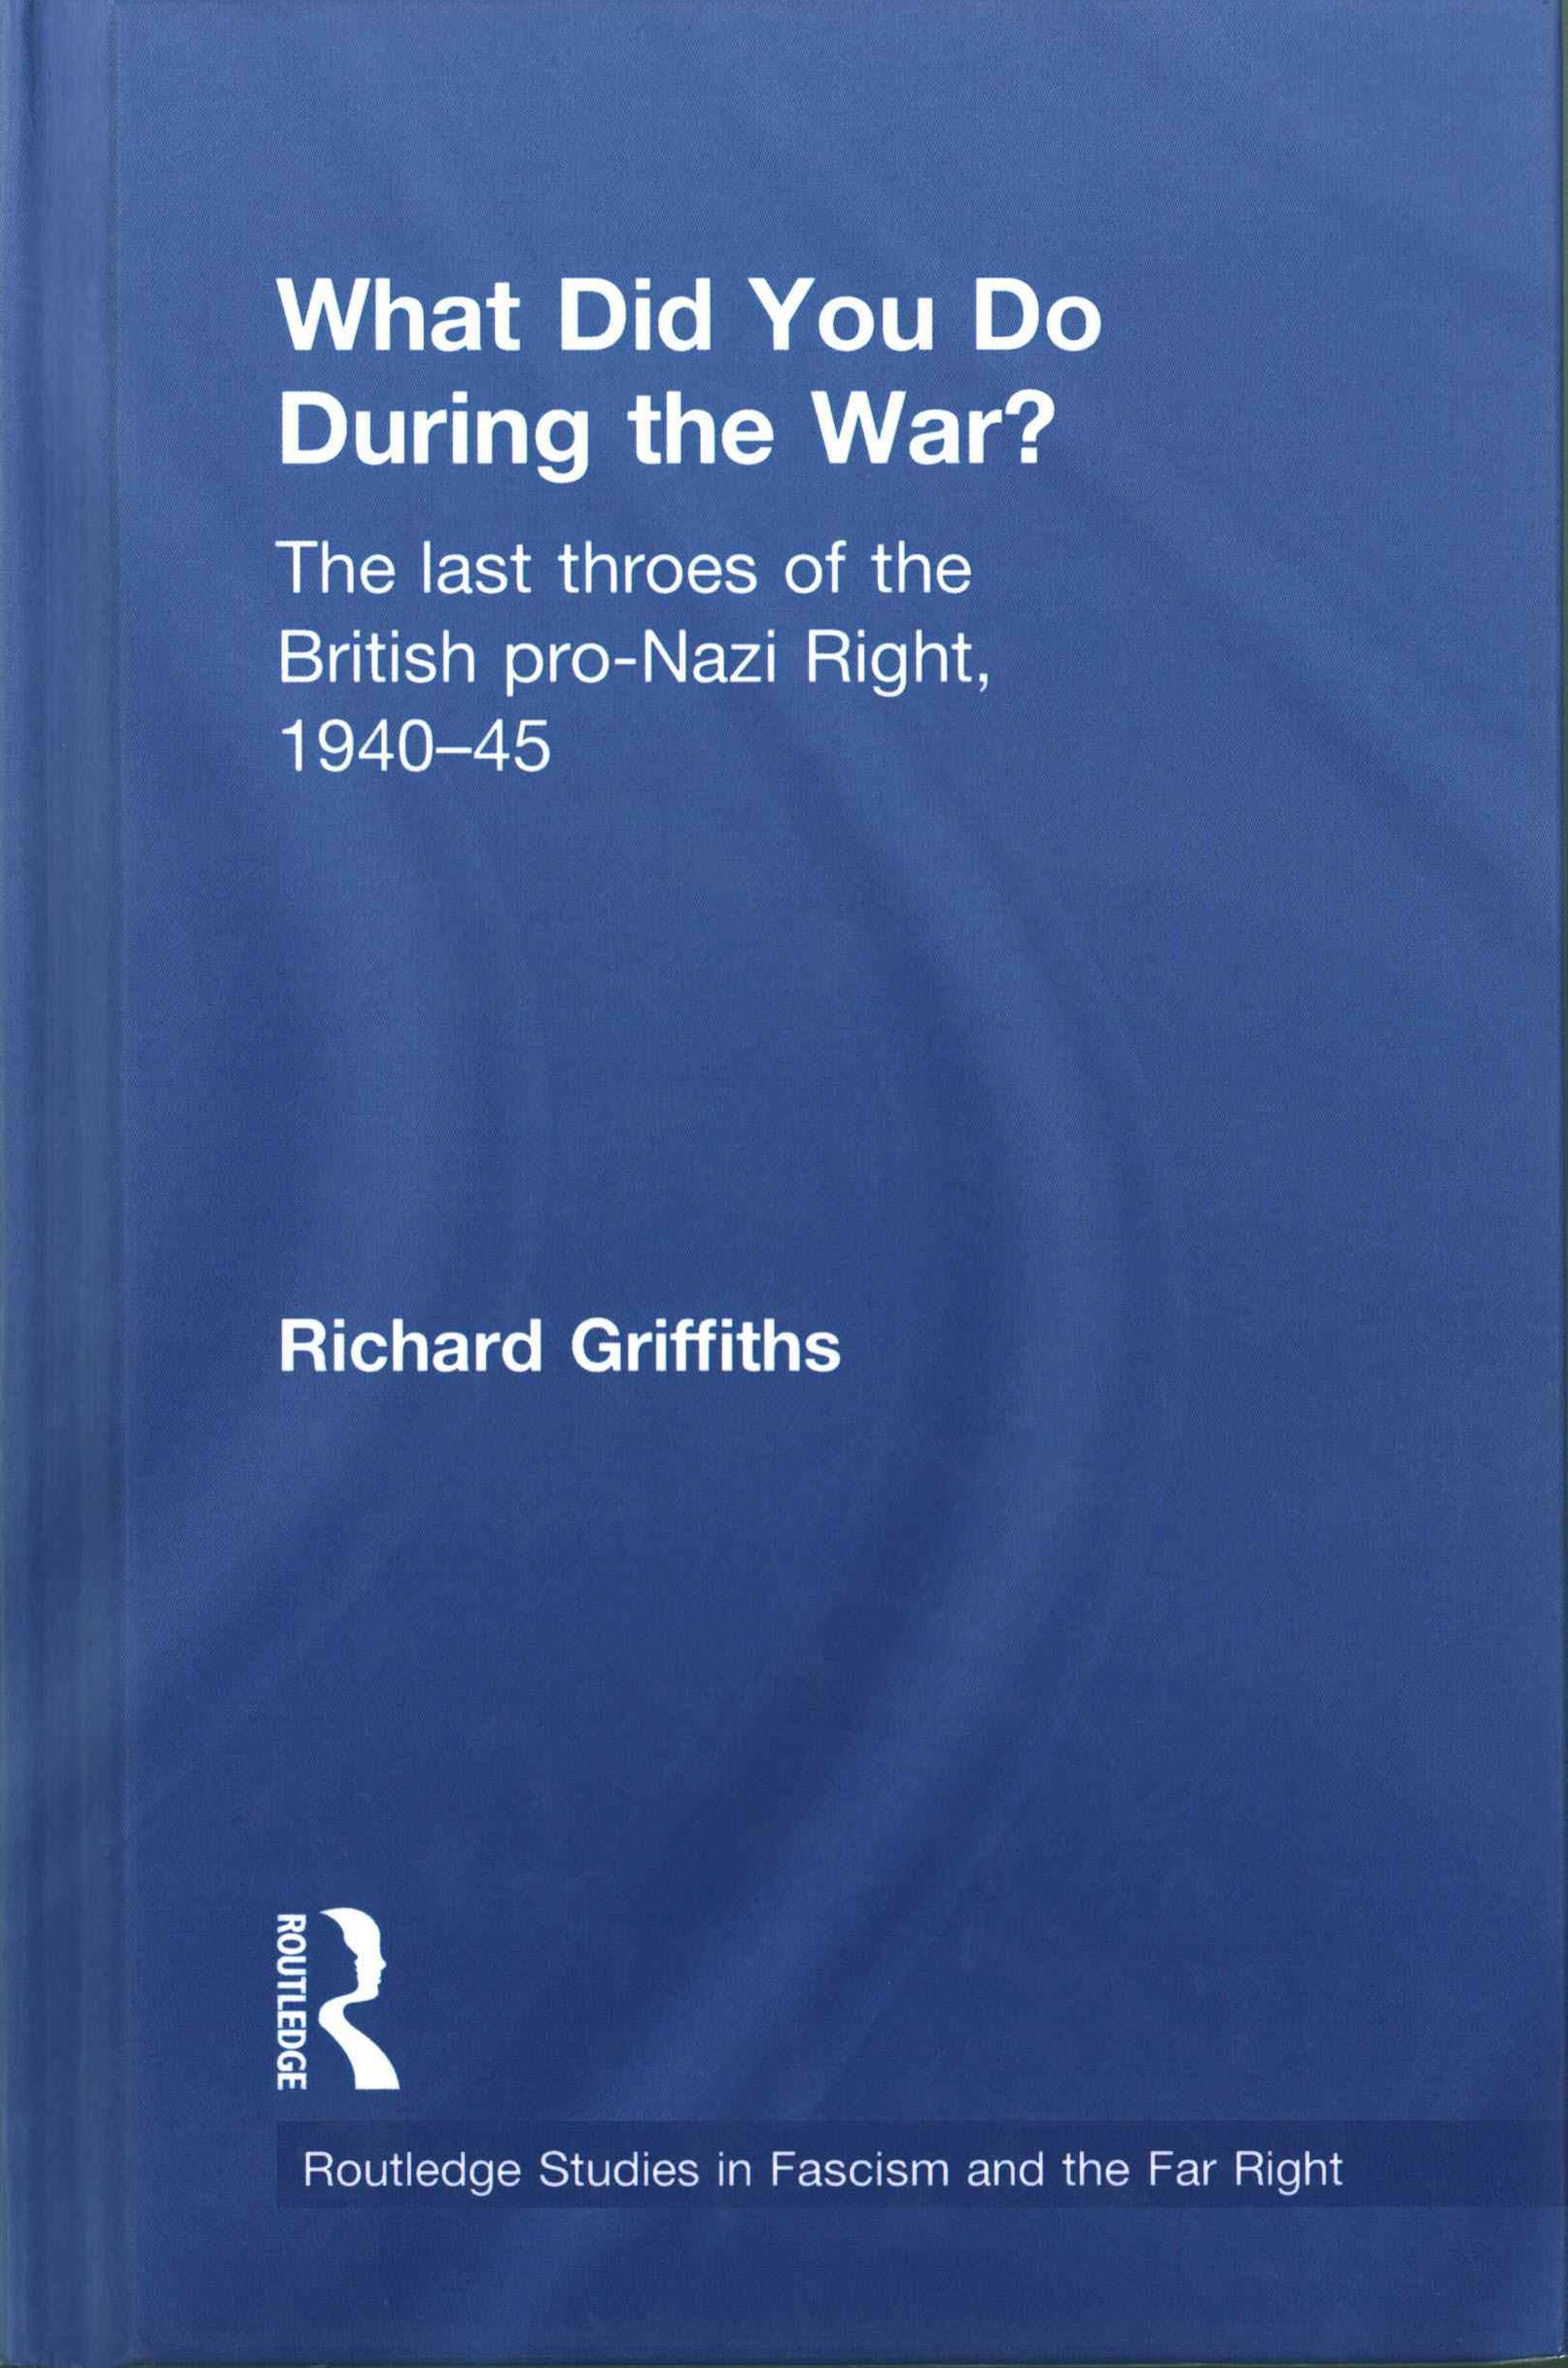 The British Extreme Right During World War Two